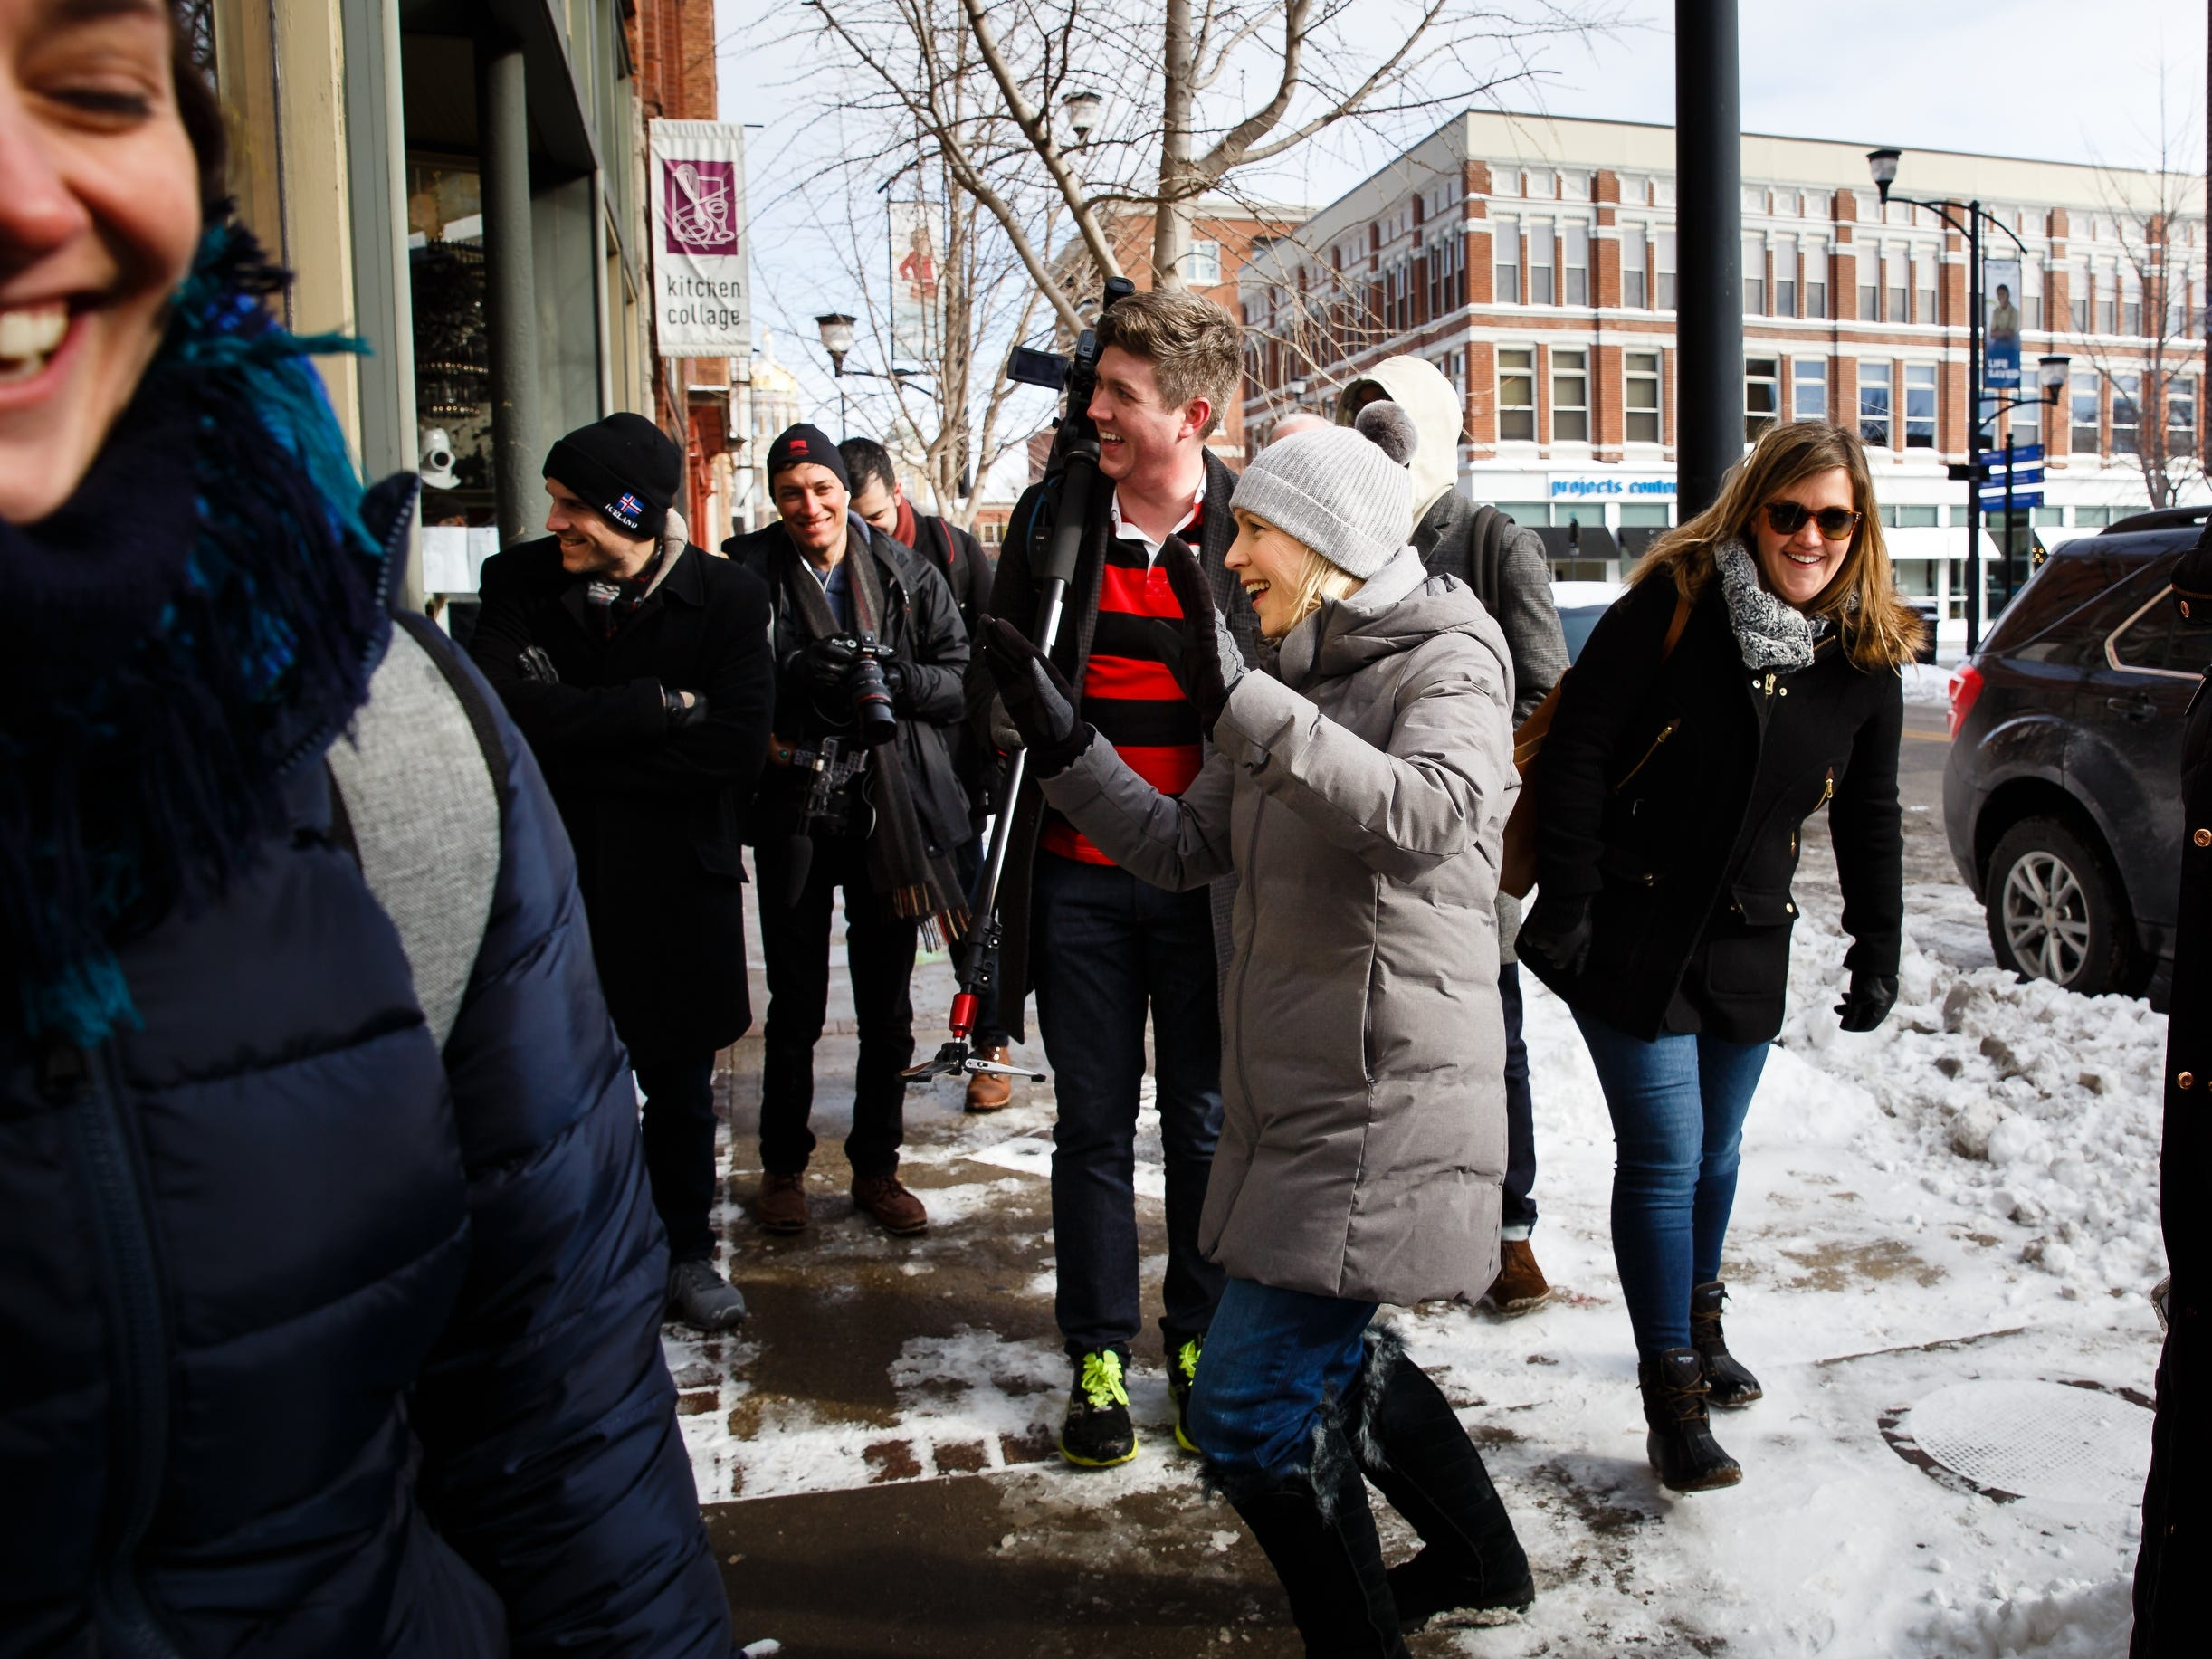 Sen. Kirsten Gillibrand of New York waves to patrons dining in the Continental during a walking tour of the East Village on Saturday, Jan. 19, 2019, in Des Moines.